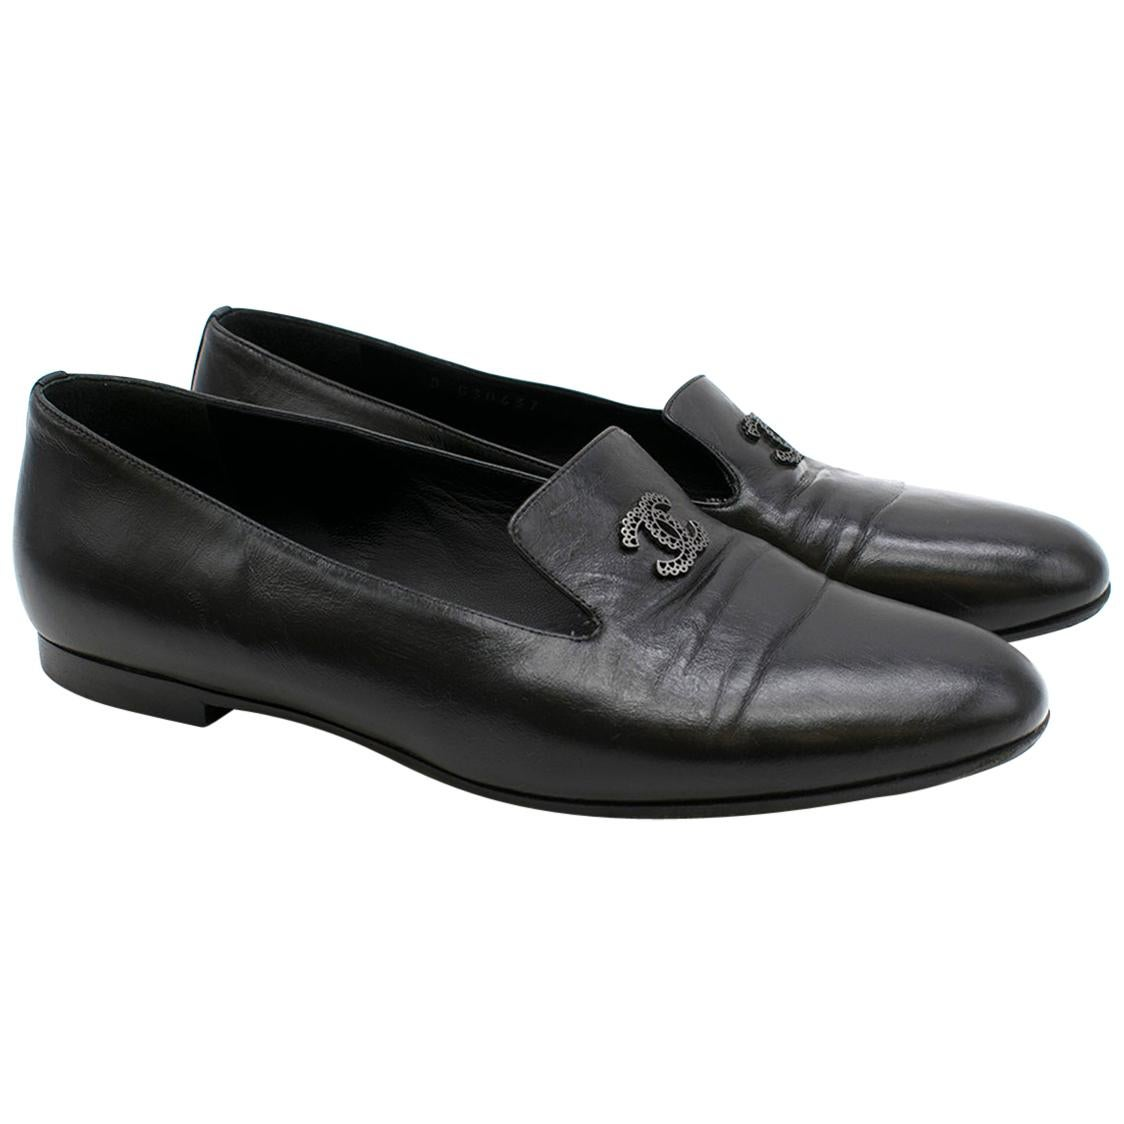 3cb5d8c0b Vintage Chanel Shoes - 384 For Sale at 1stdibs